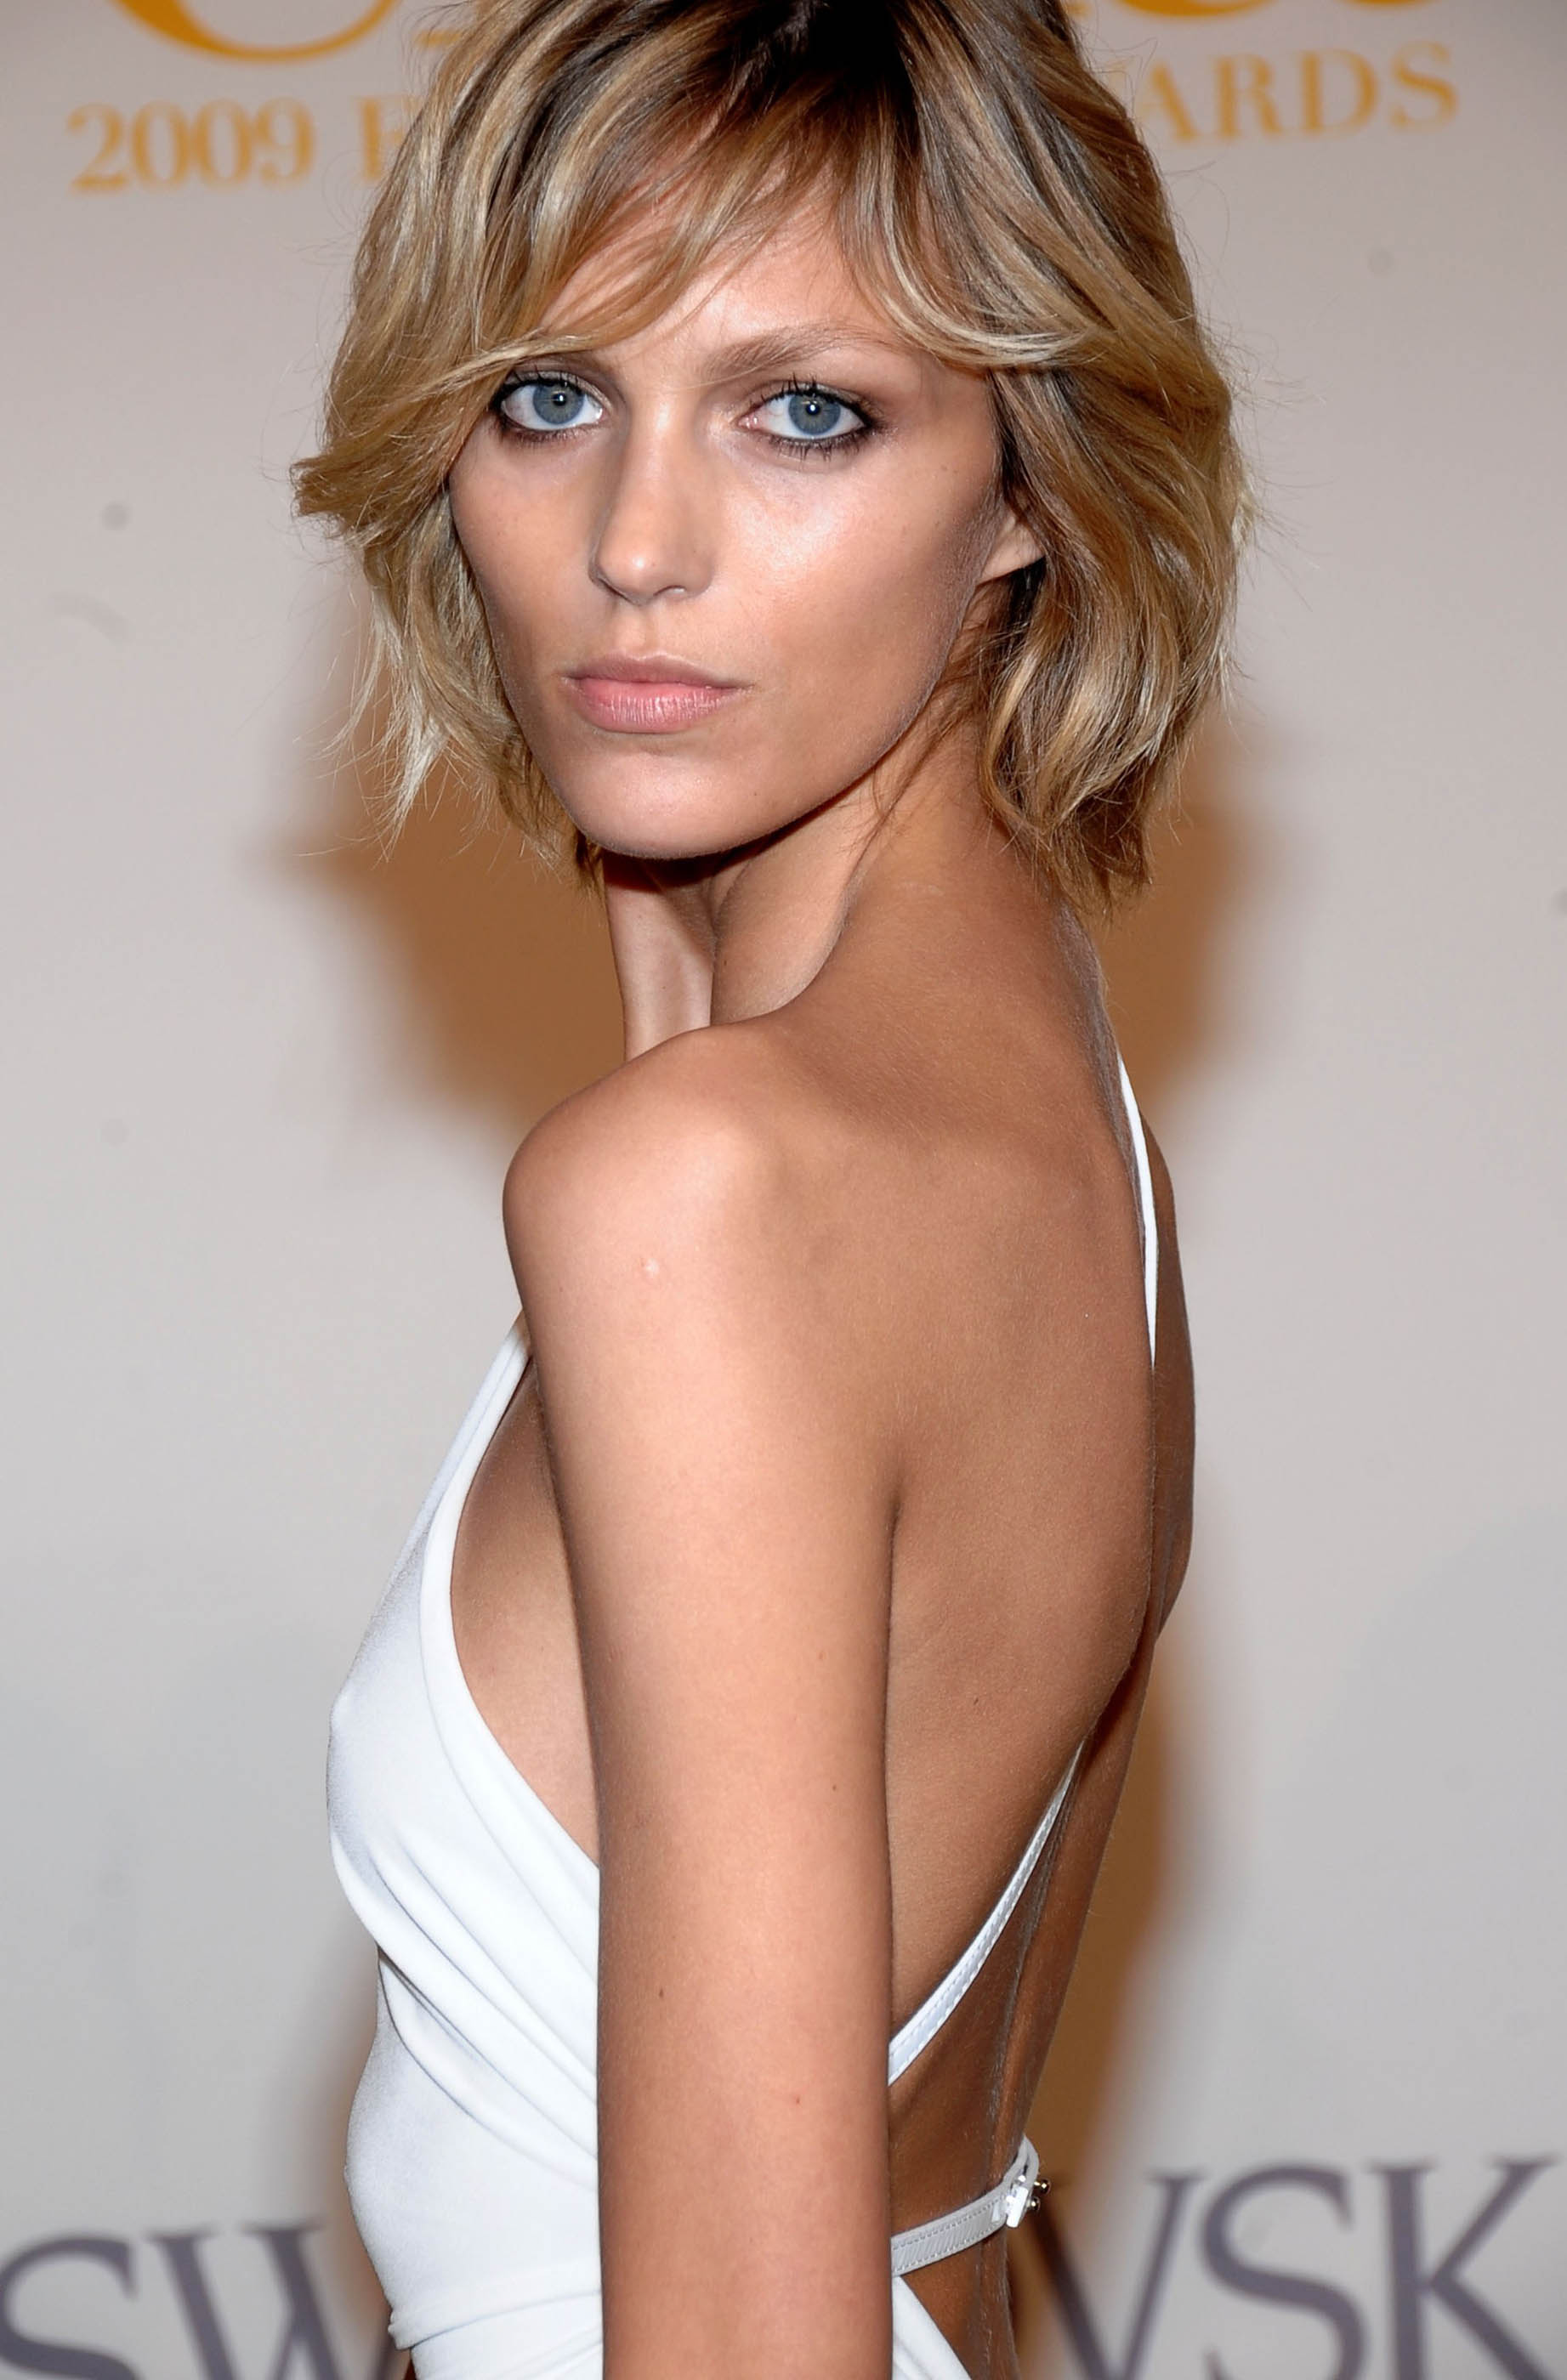 Anja Rubik earned a  million dollar salary, leaving the net worth at 10 million in 2017